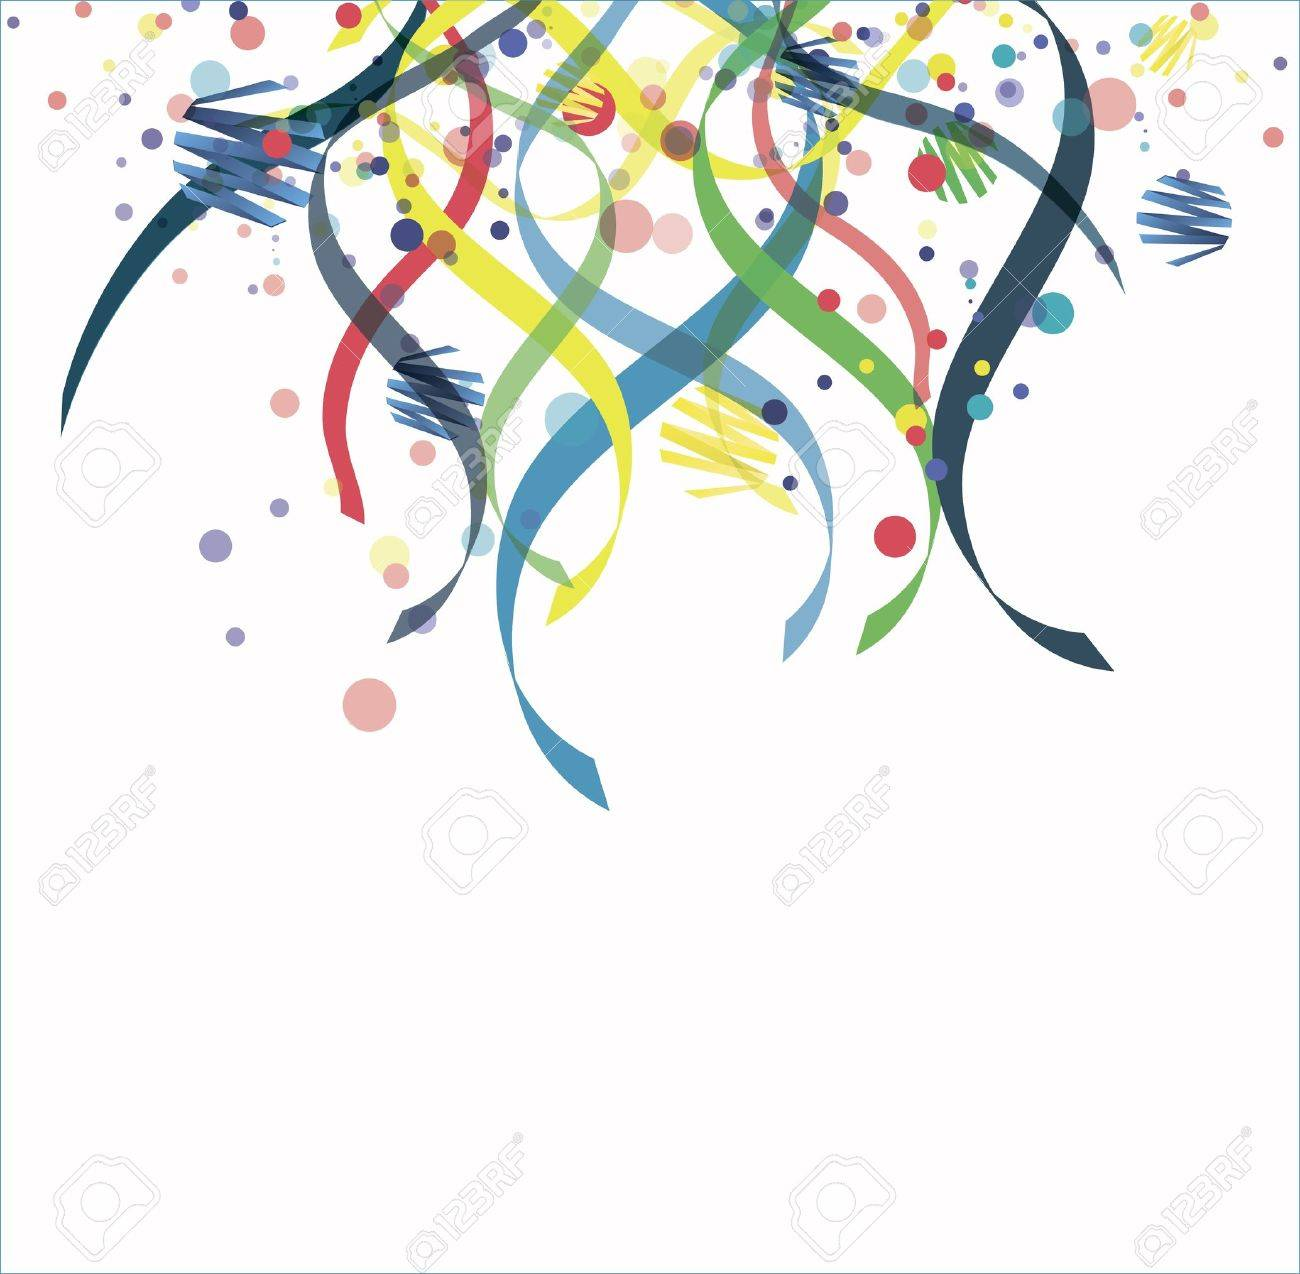 Confetti isolated on a white background Stock Photo - 12412049